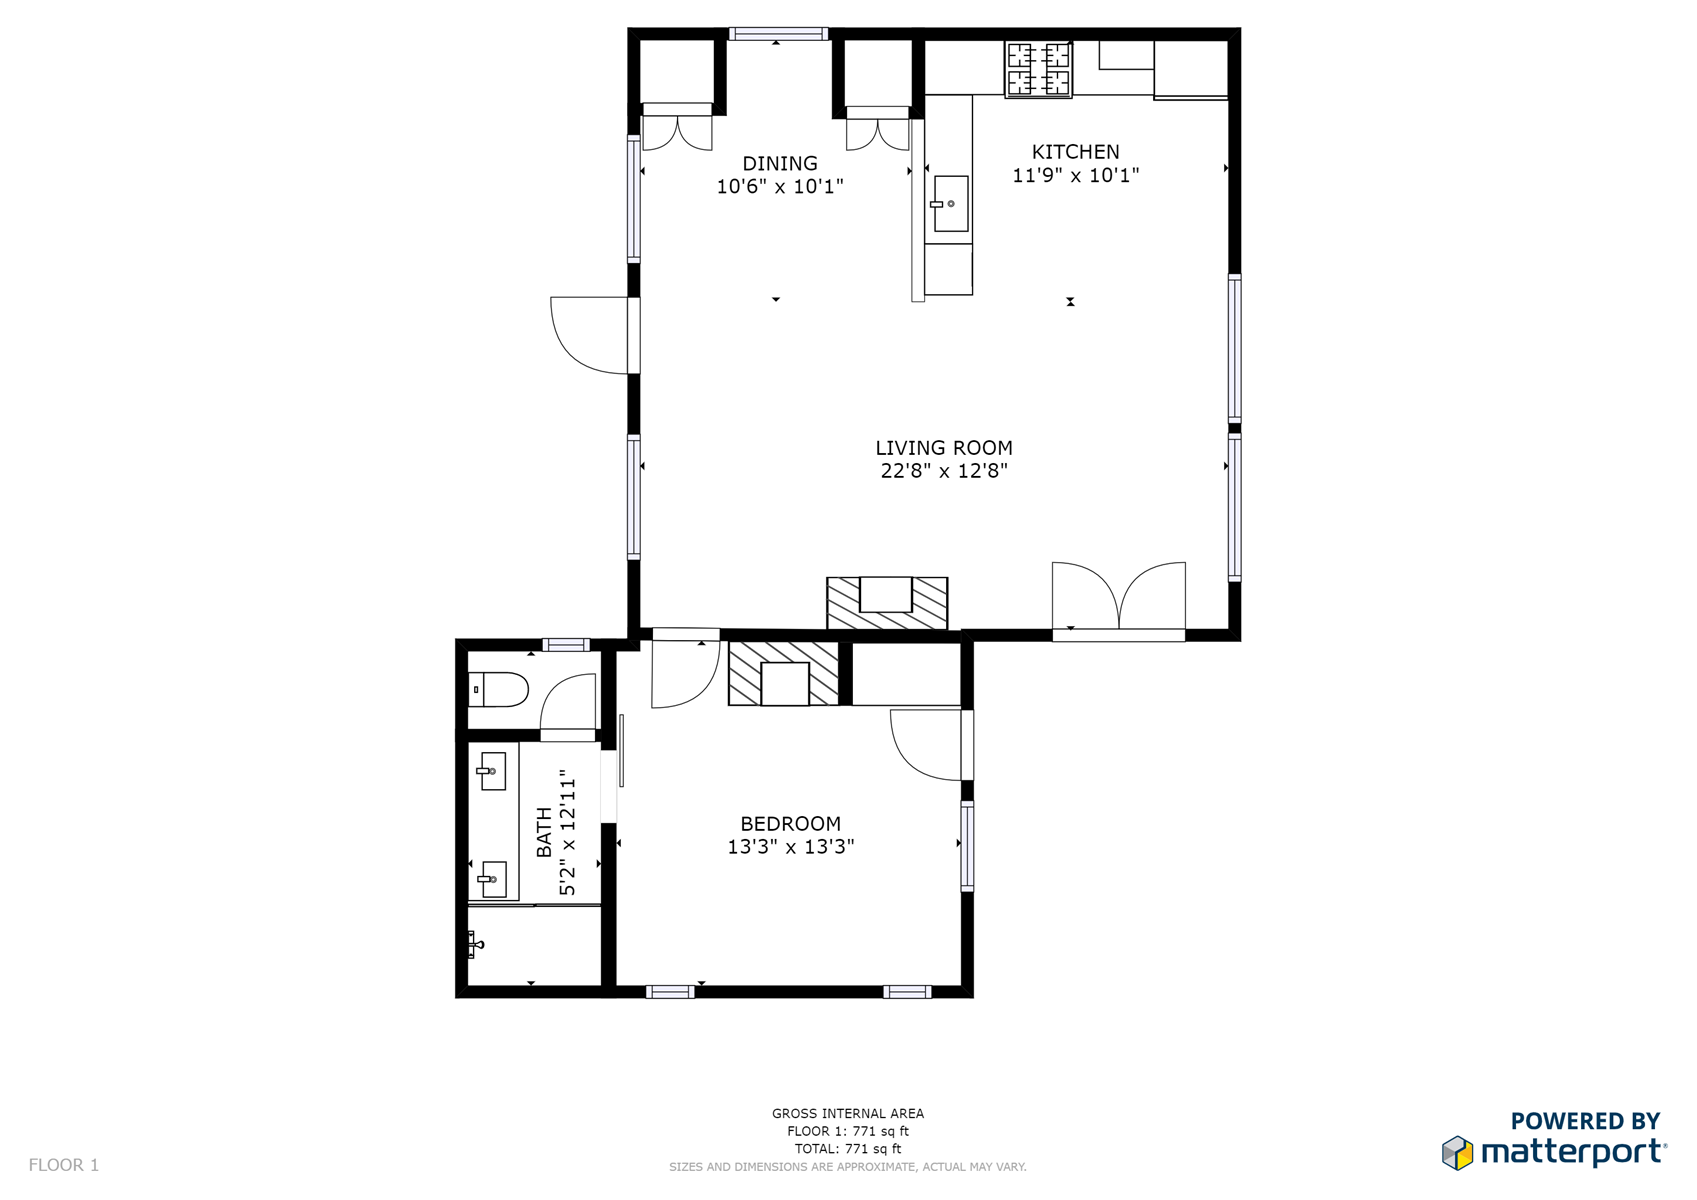 Floor Plan for Delgado A - 1 Bed / 1 Bath, Luxury Casita